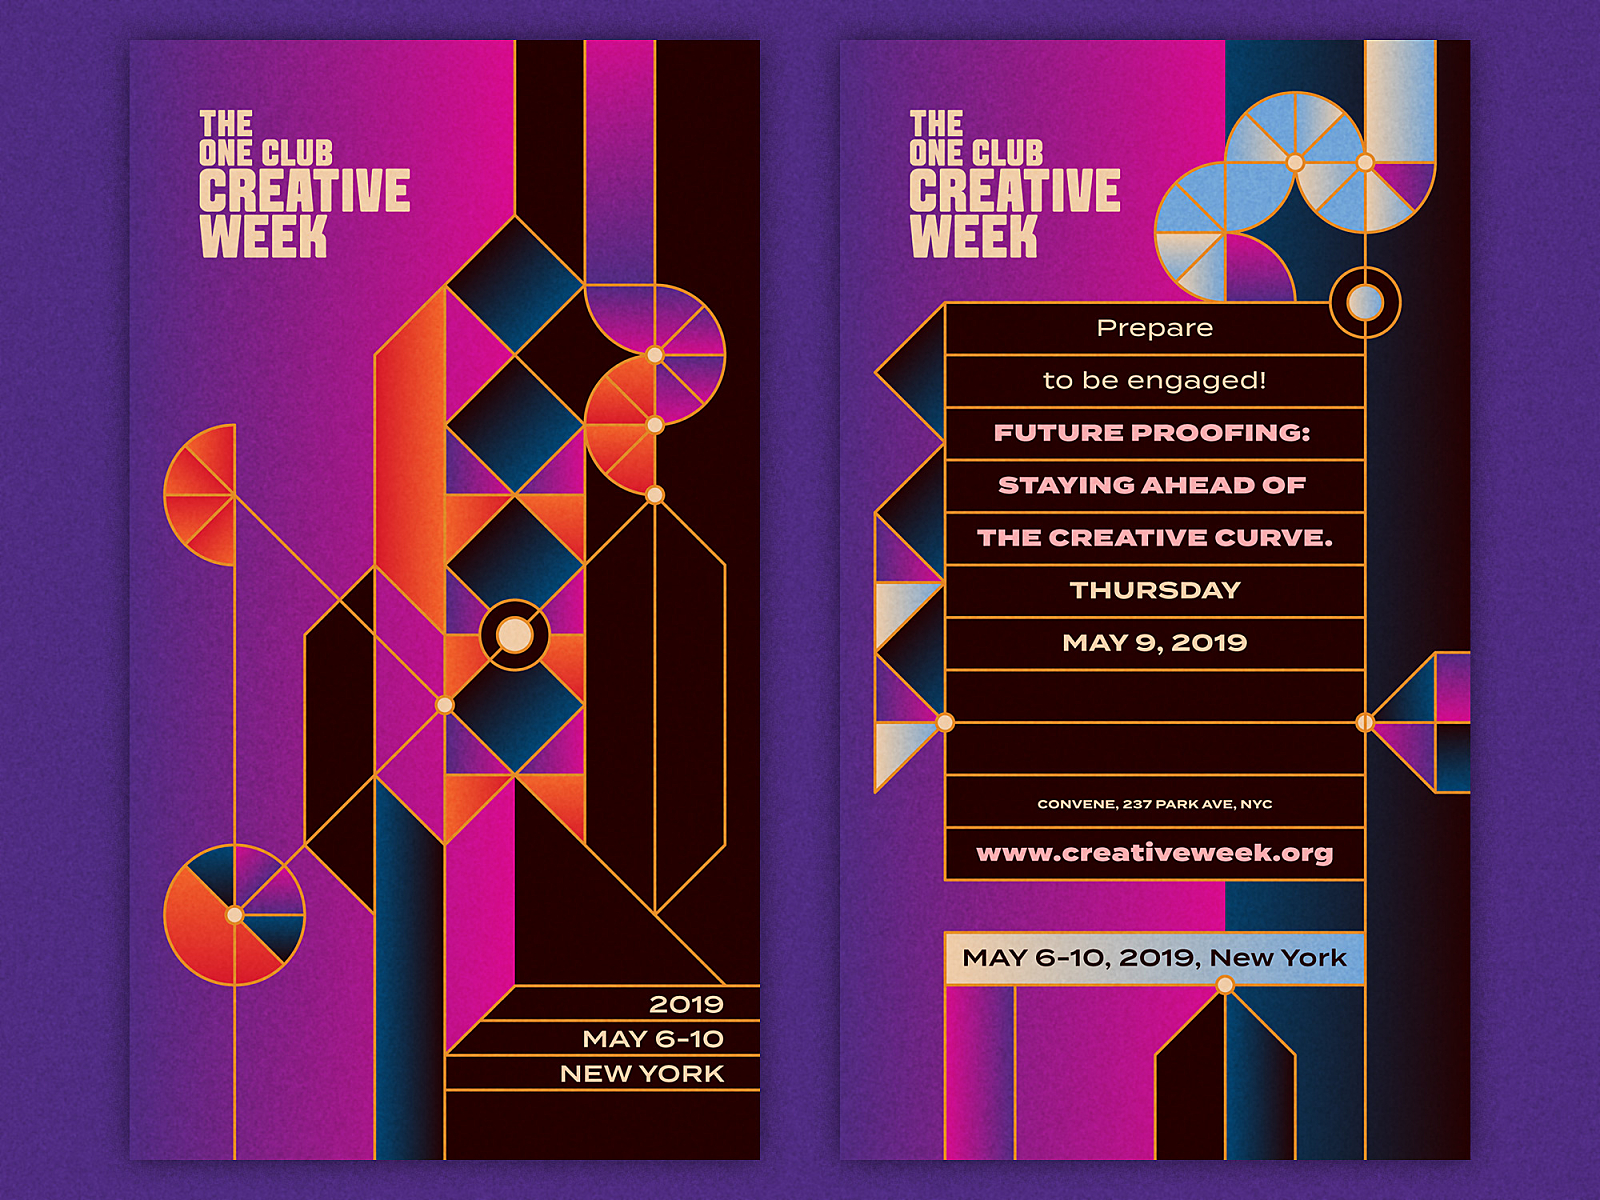 The One Club Creative Week Message System 1 by Nick